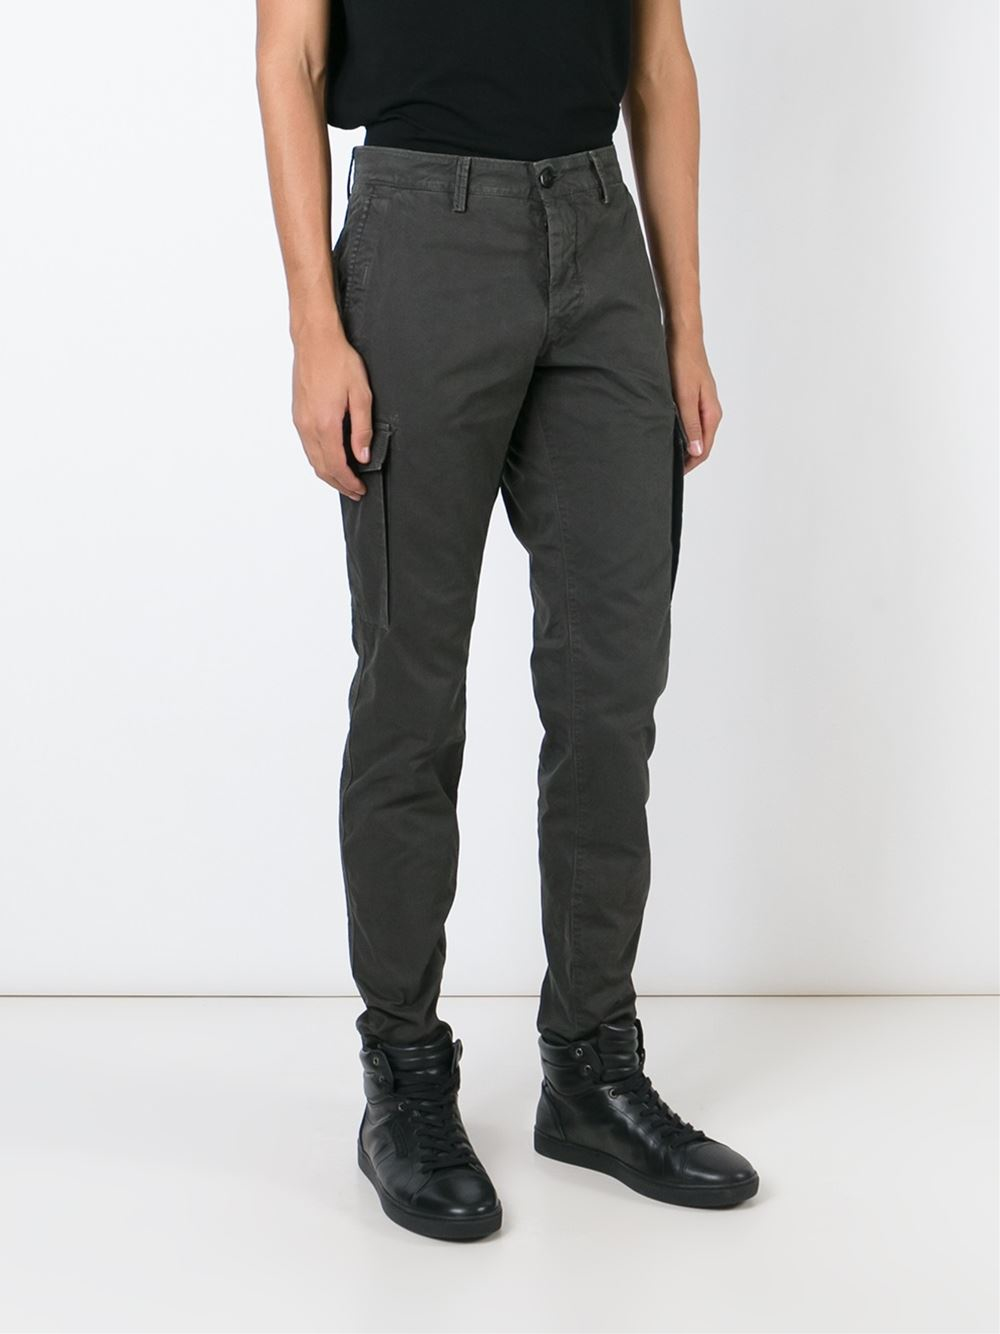 Lyst - Stone Island Slim Cargo Trousers in Gray for Men